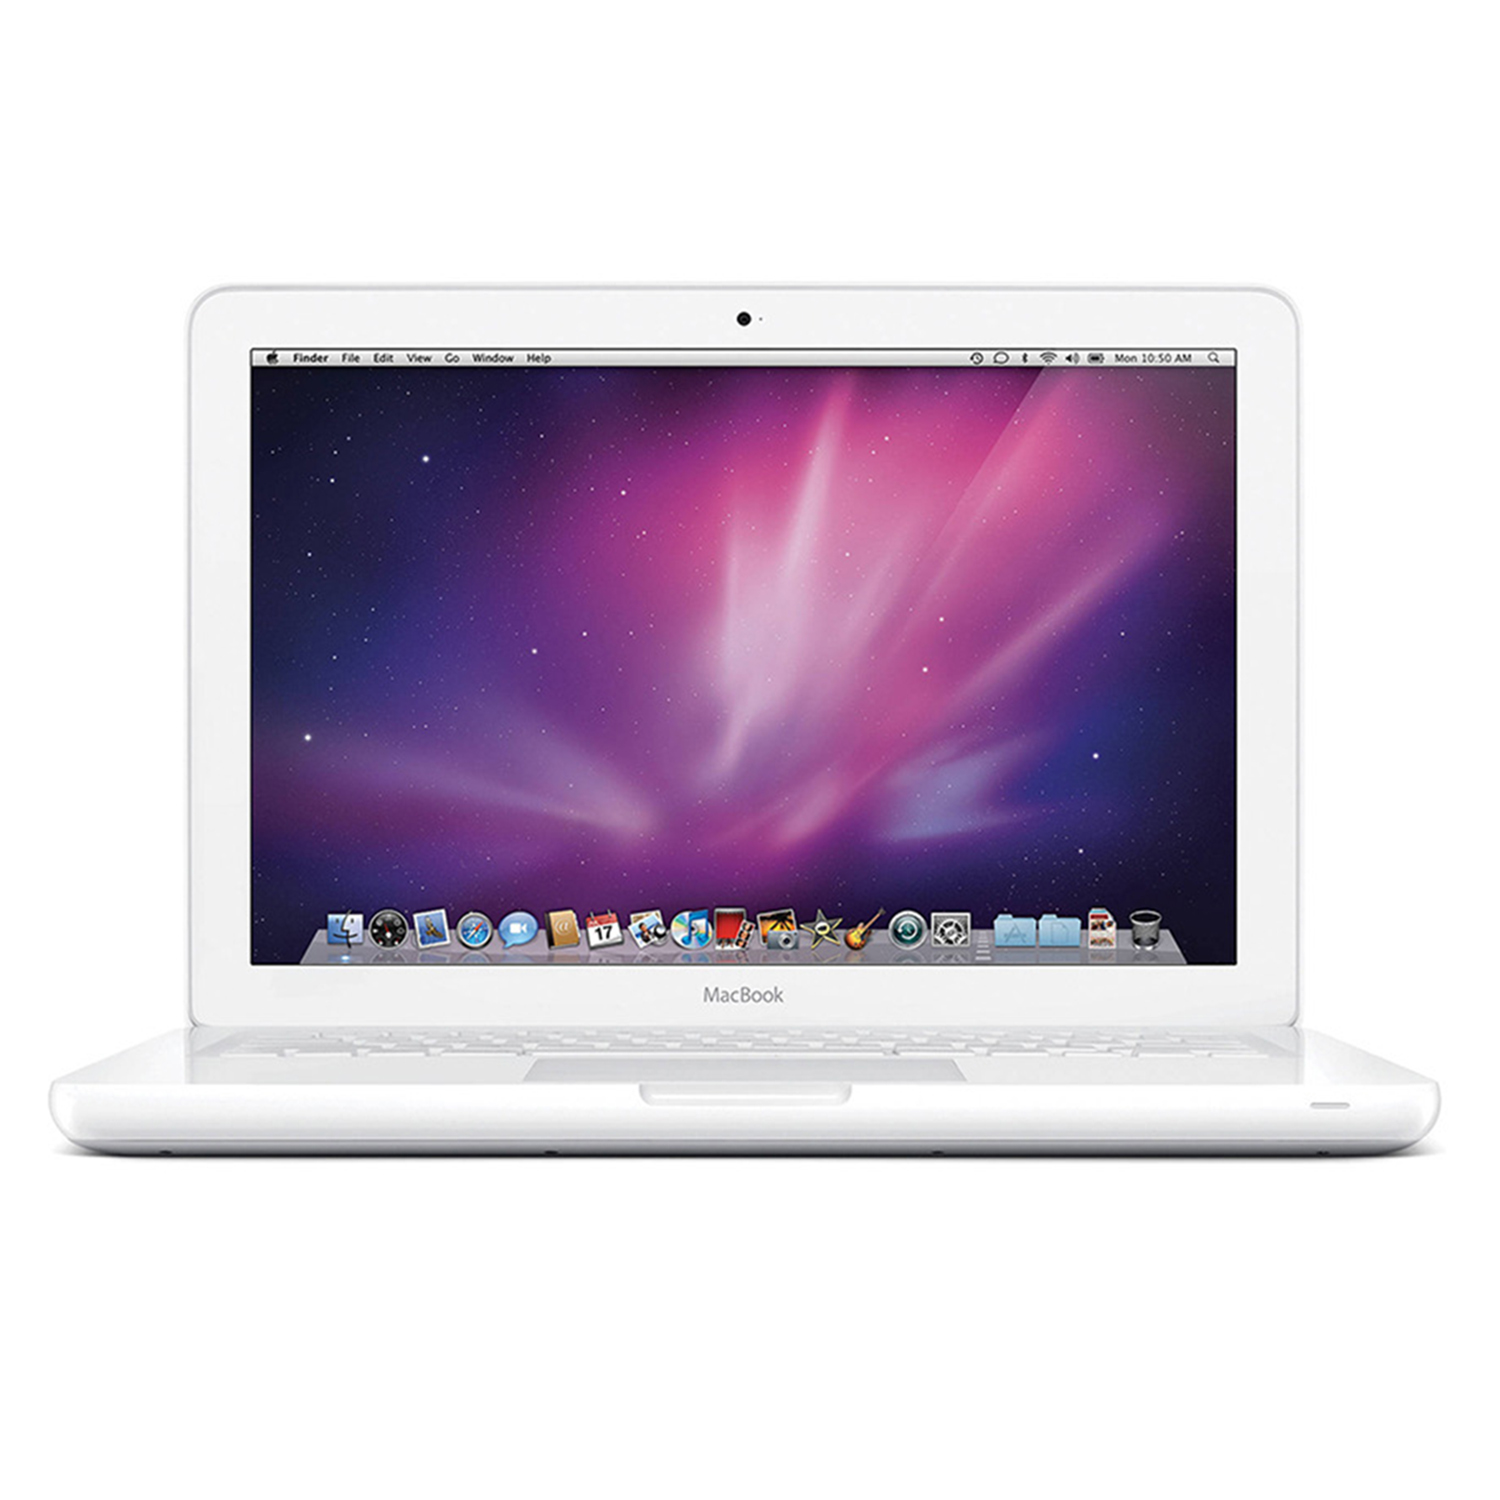 "Refurbished Apple Macbook 13.3"" LED Laptop MC516LL/A 2 Duo P8600 2.4GHz OS X 2GB 250GB"